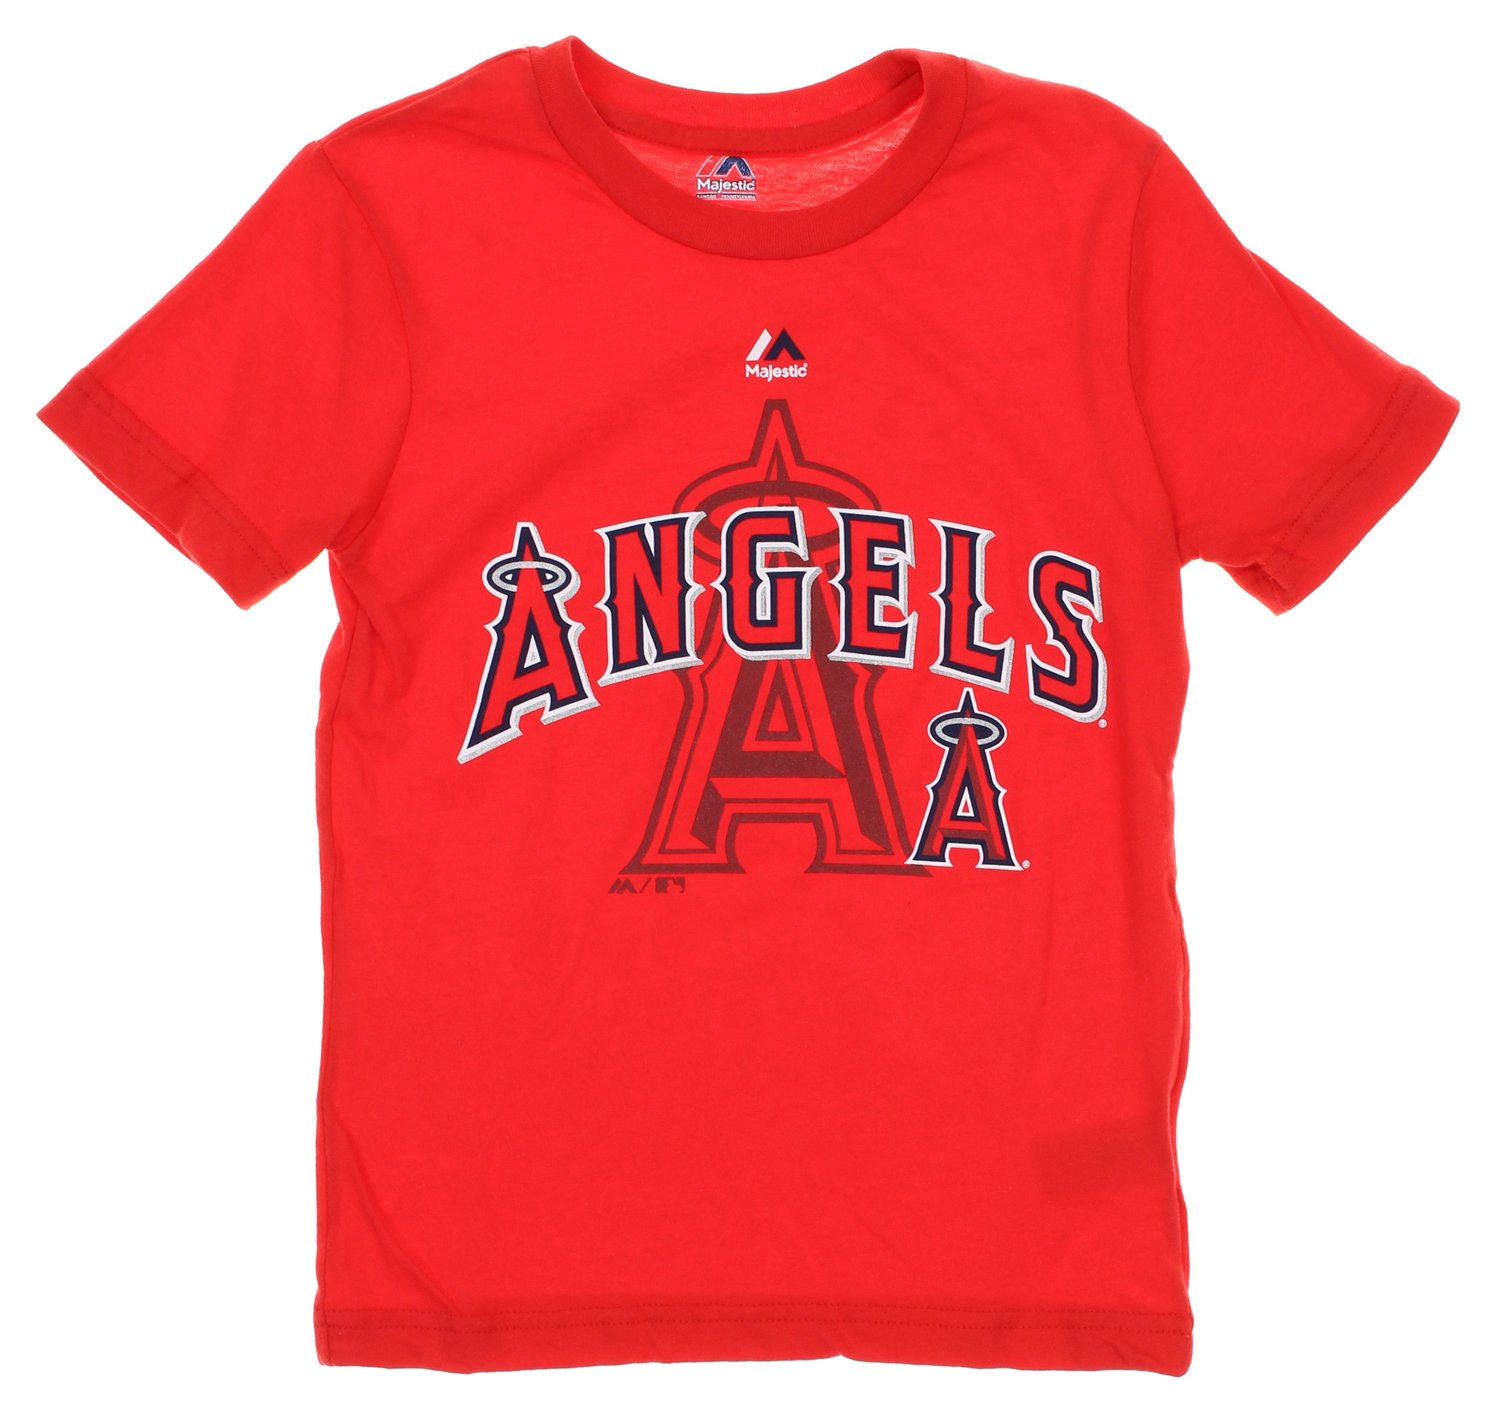 新発売の マジェスティックMLB Los Angeles T、レッド Angels of Anaheim Big Real Boys Youth B01E06TPWI Real Gem T、レッド XL B01E06TPWI, 三河機工 カイノス:0fda25b1 --- a0267596.xsph.ru